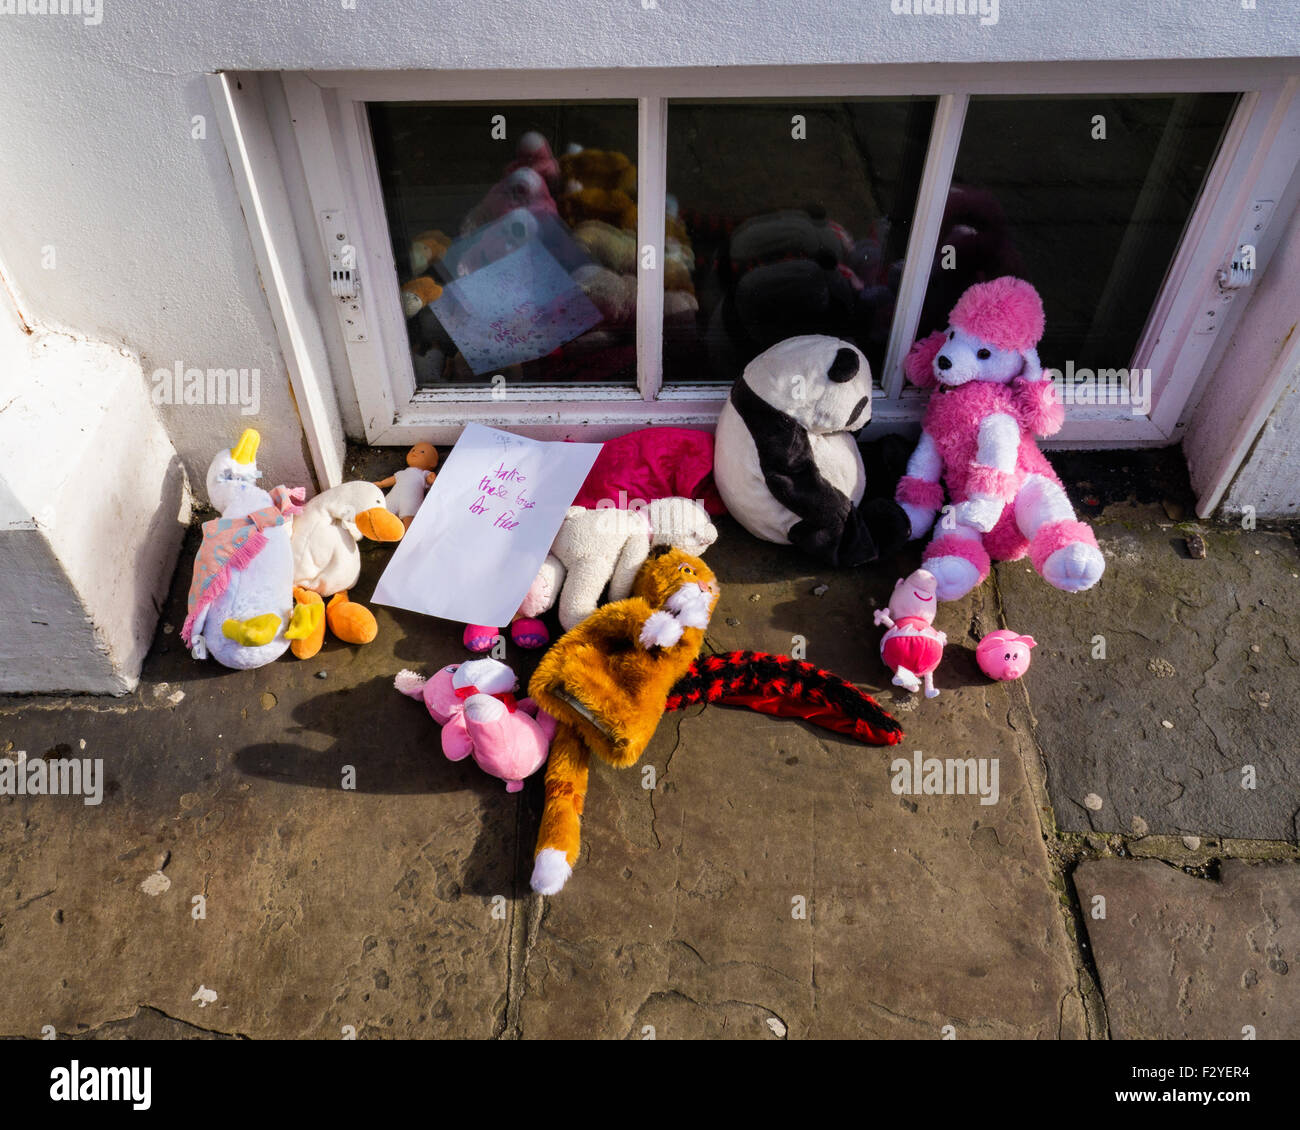 Free toys, soft toy give-away, help yourself on pavement in Greenwich, London - Stock Image